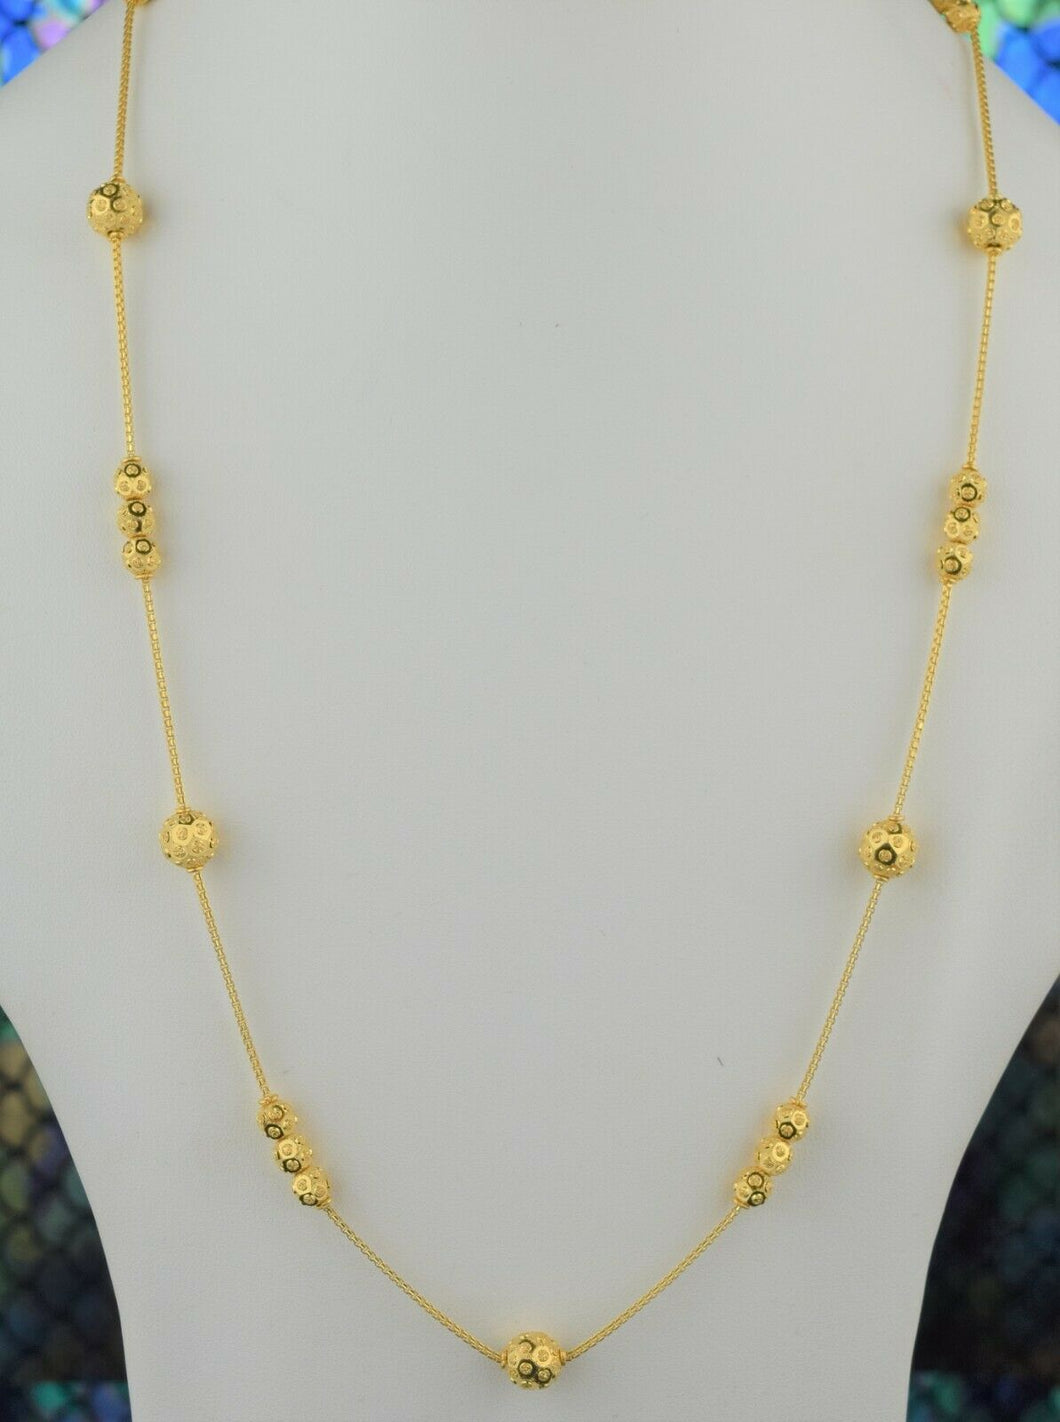 22k Chain Solid Gold Ladies Elegant Snake And Beads Link Design C049